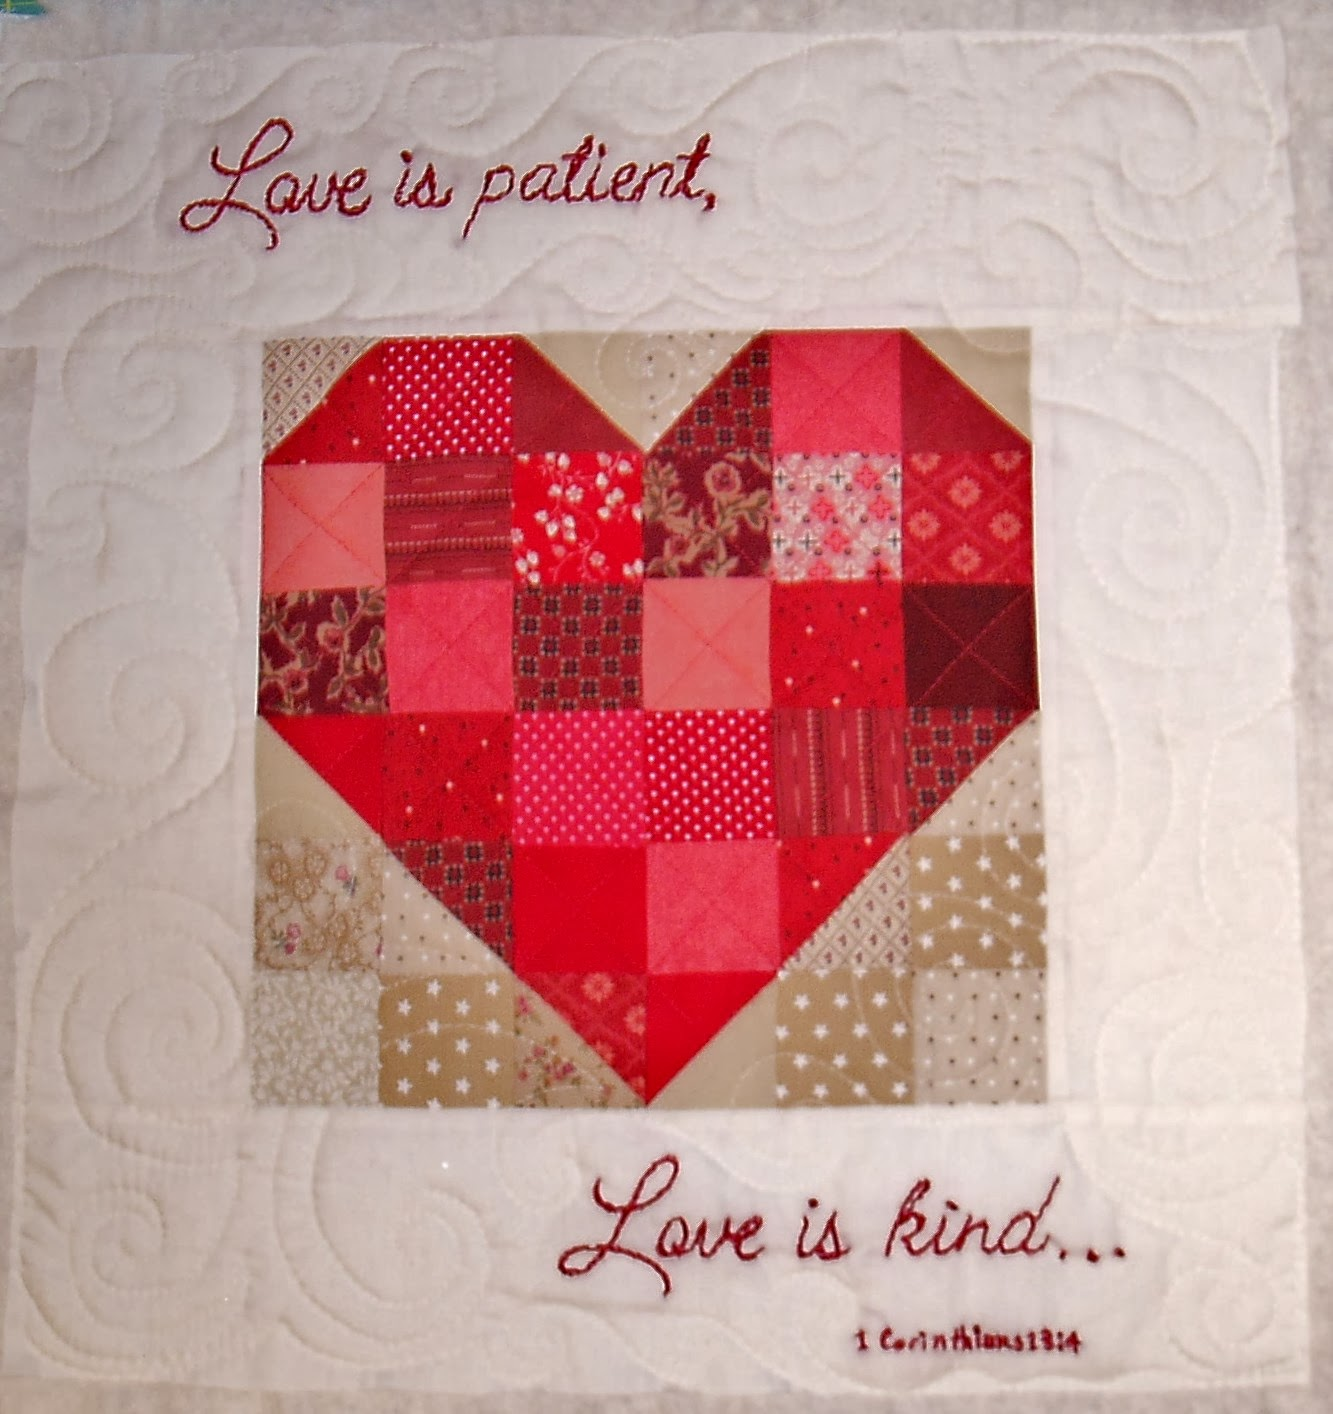 http://sunshineintheattic.blogspot.com/2014/02/pieced-heart-pillow-and-valentine-table.html